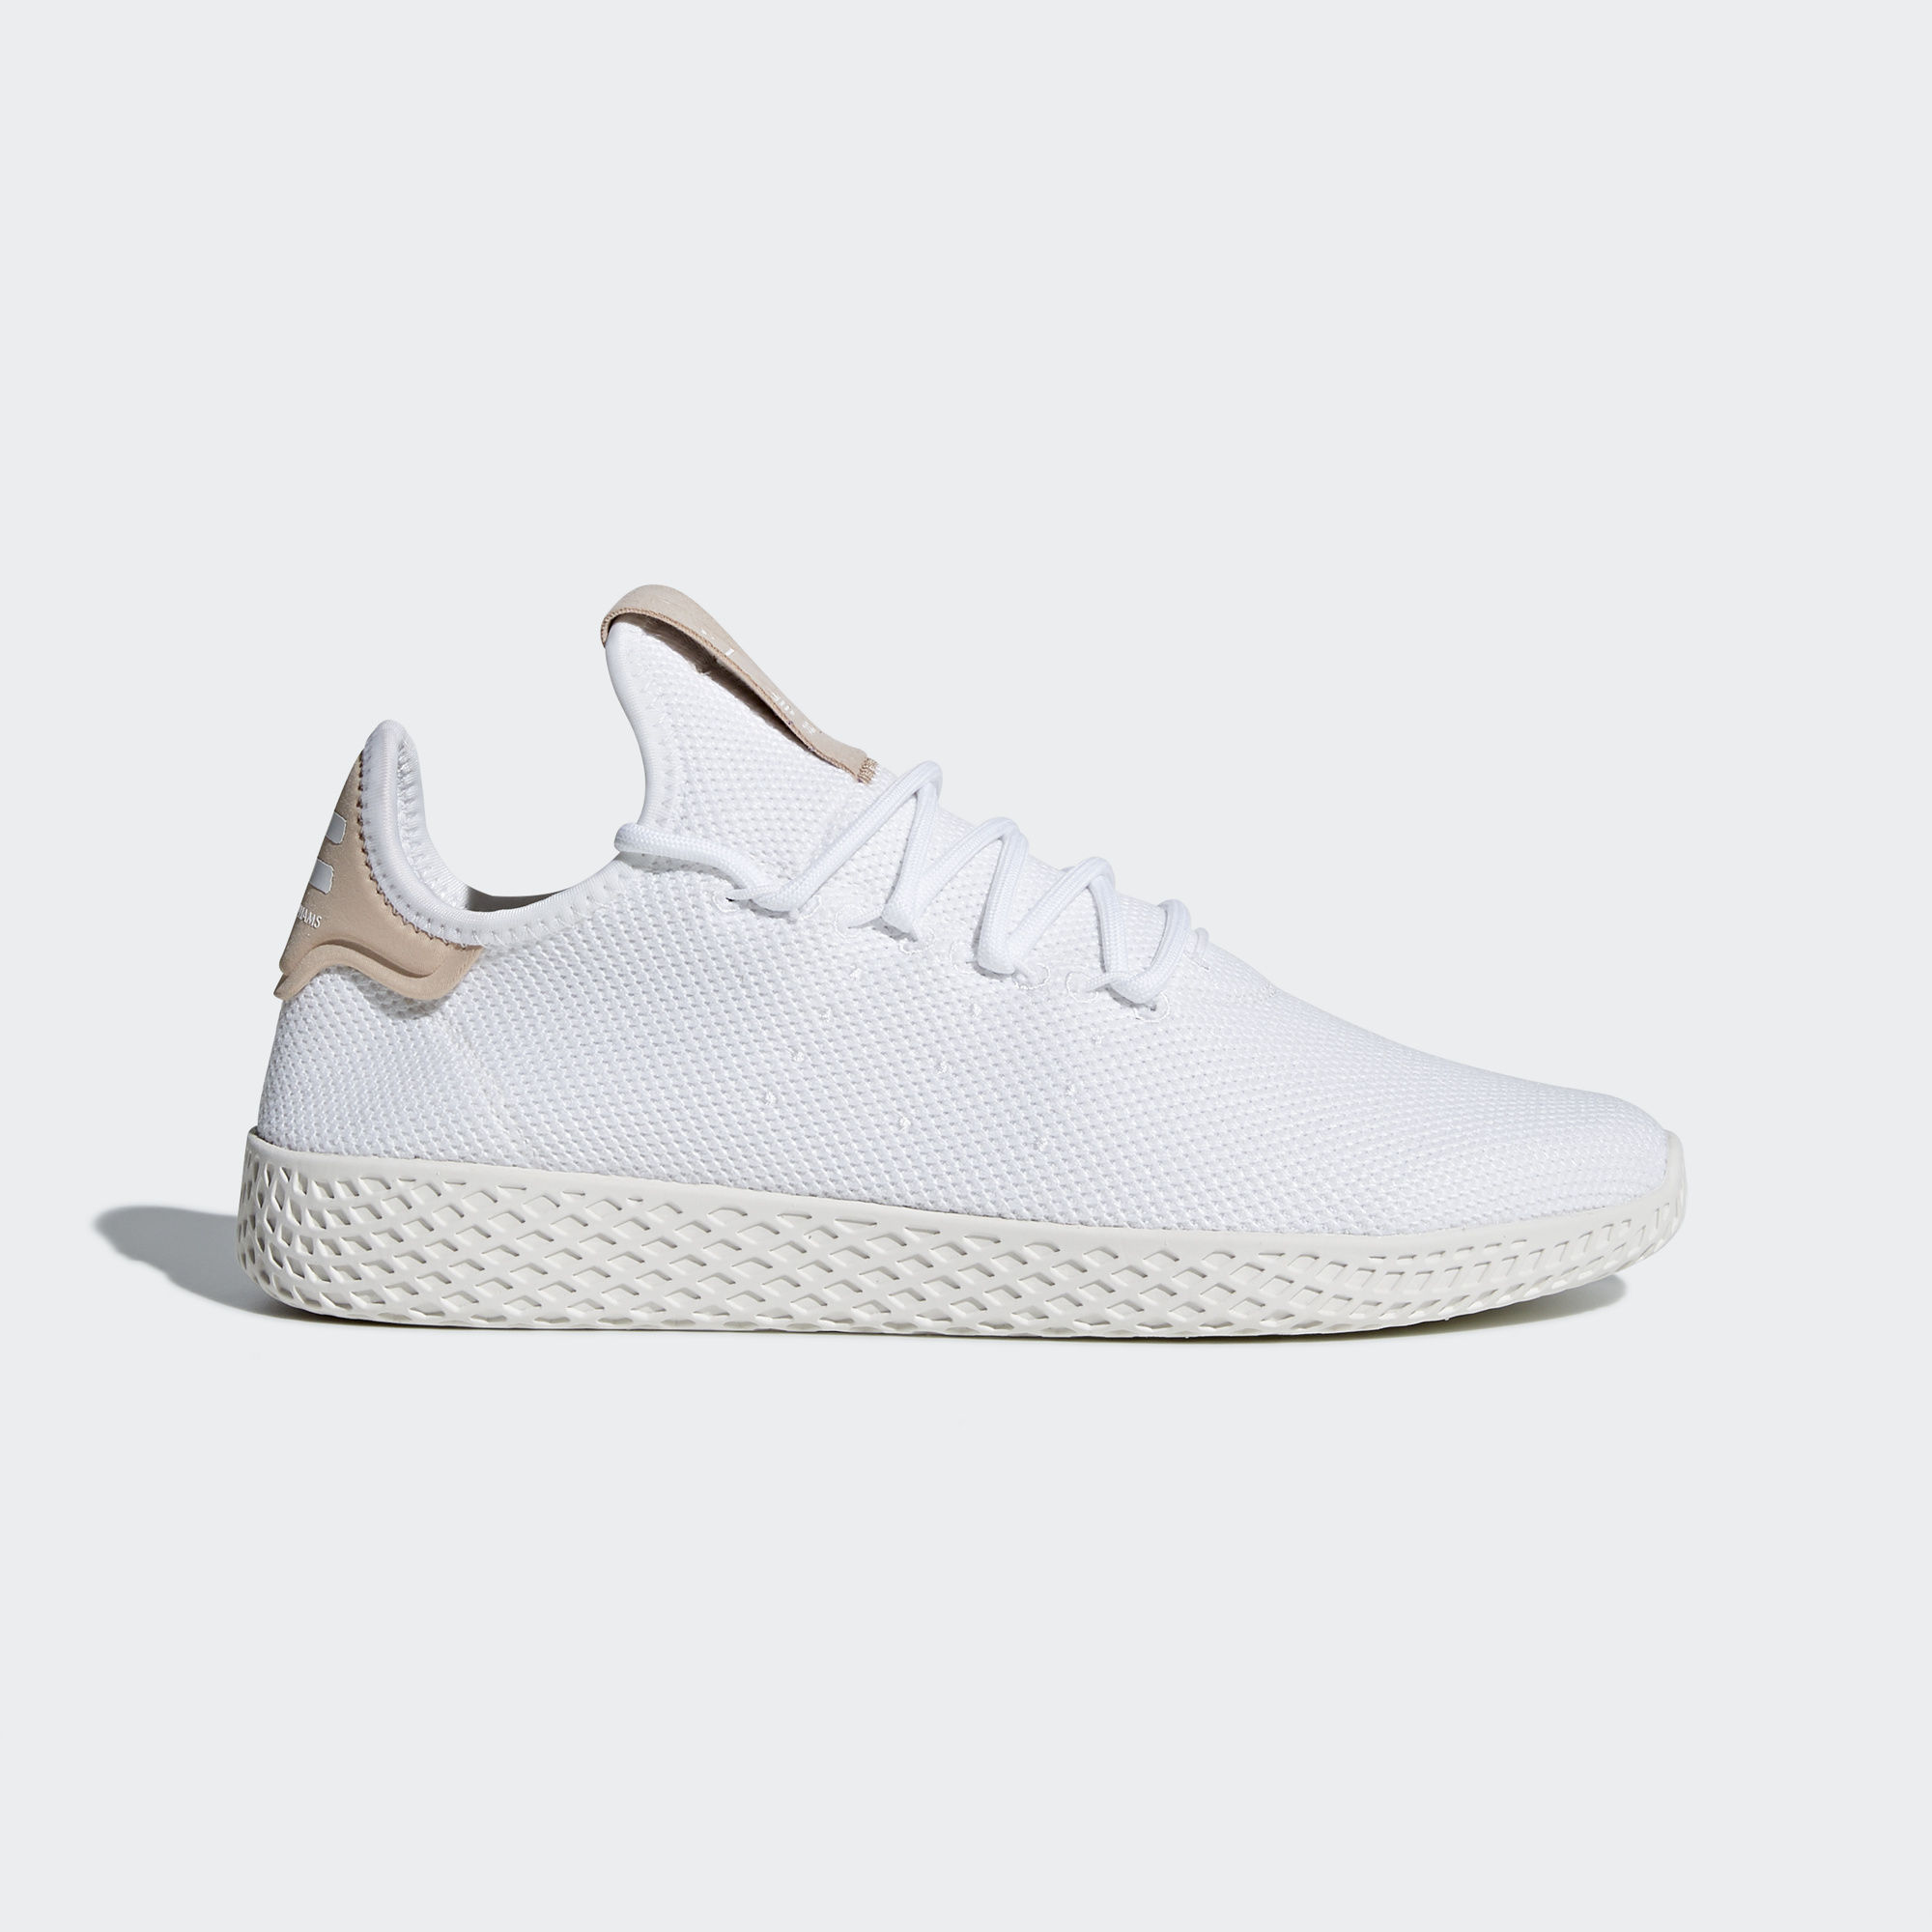 Unisex Adidas Pharrell Williams Tennis HU white/Tan